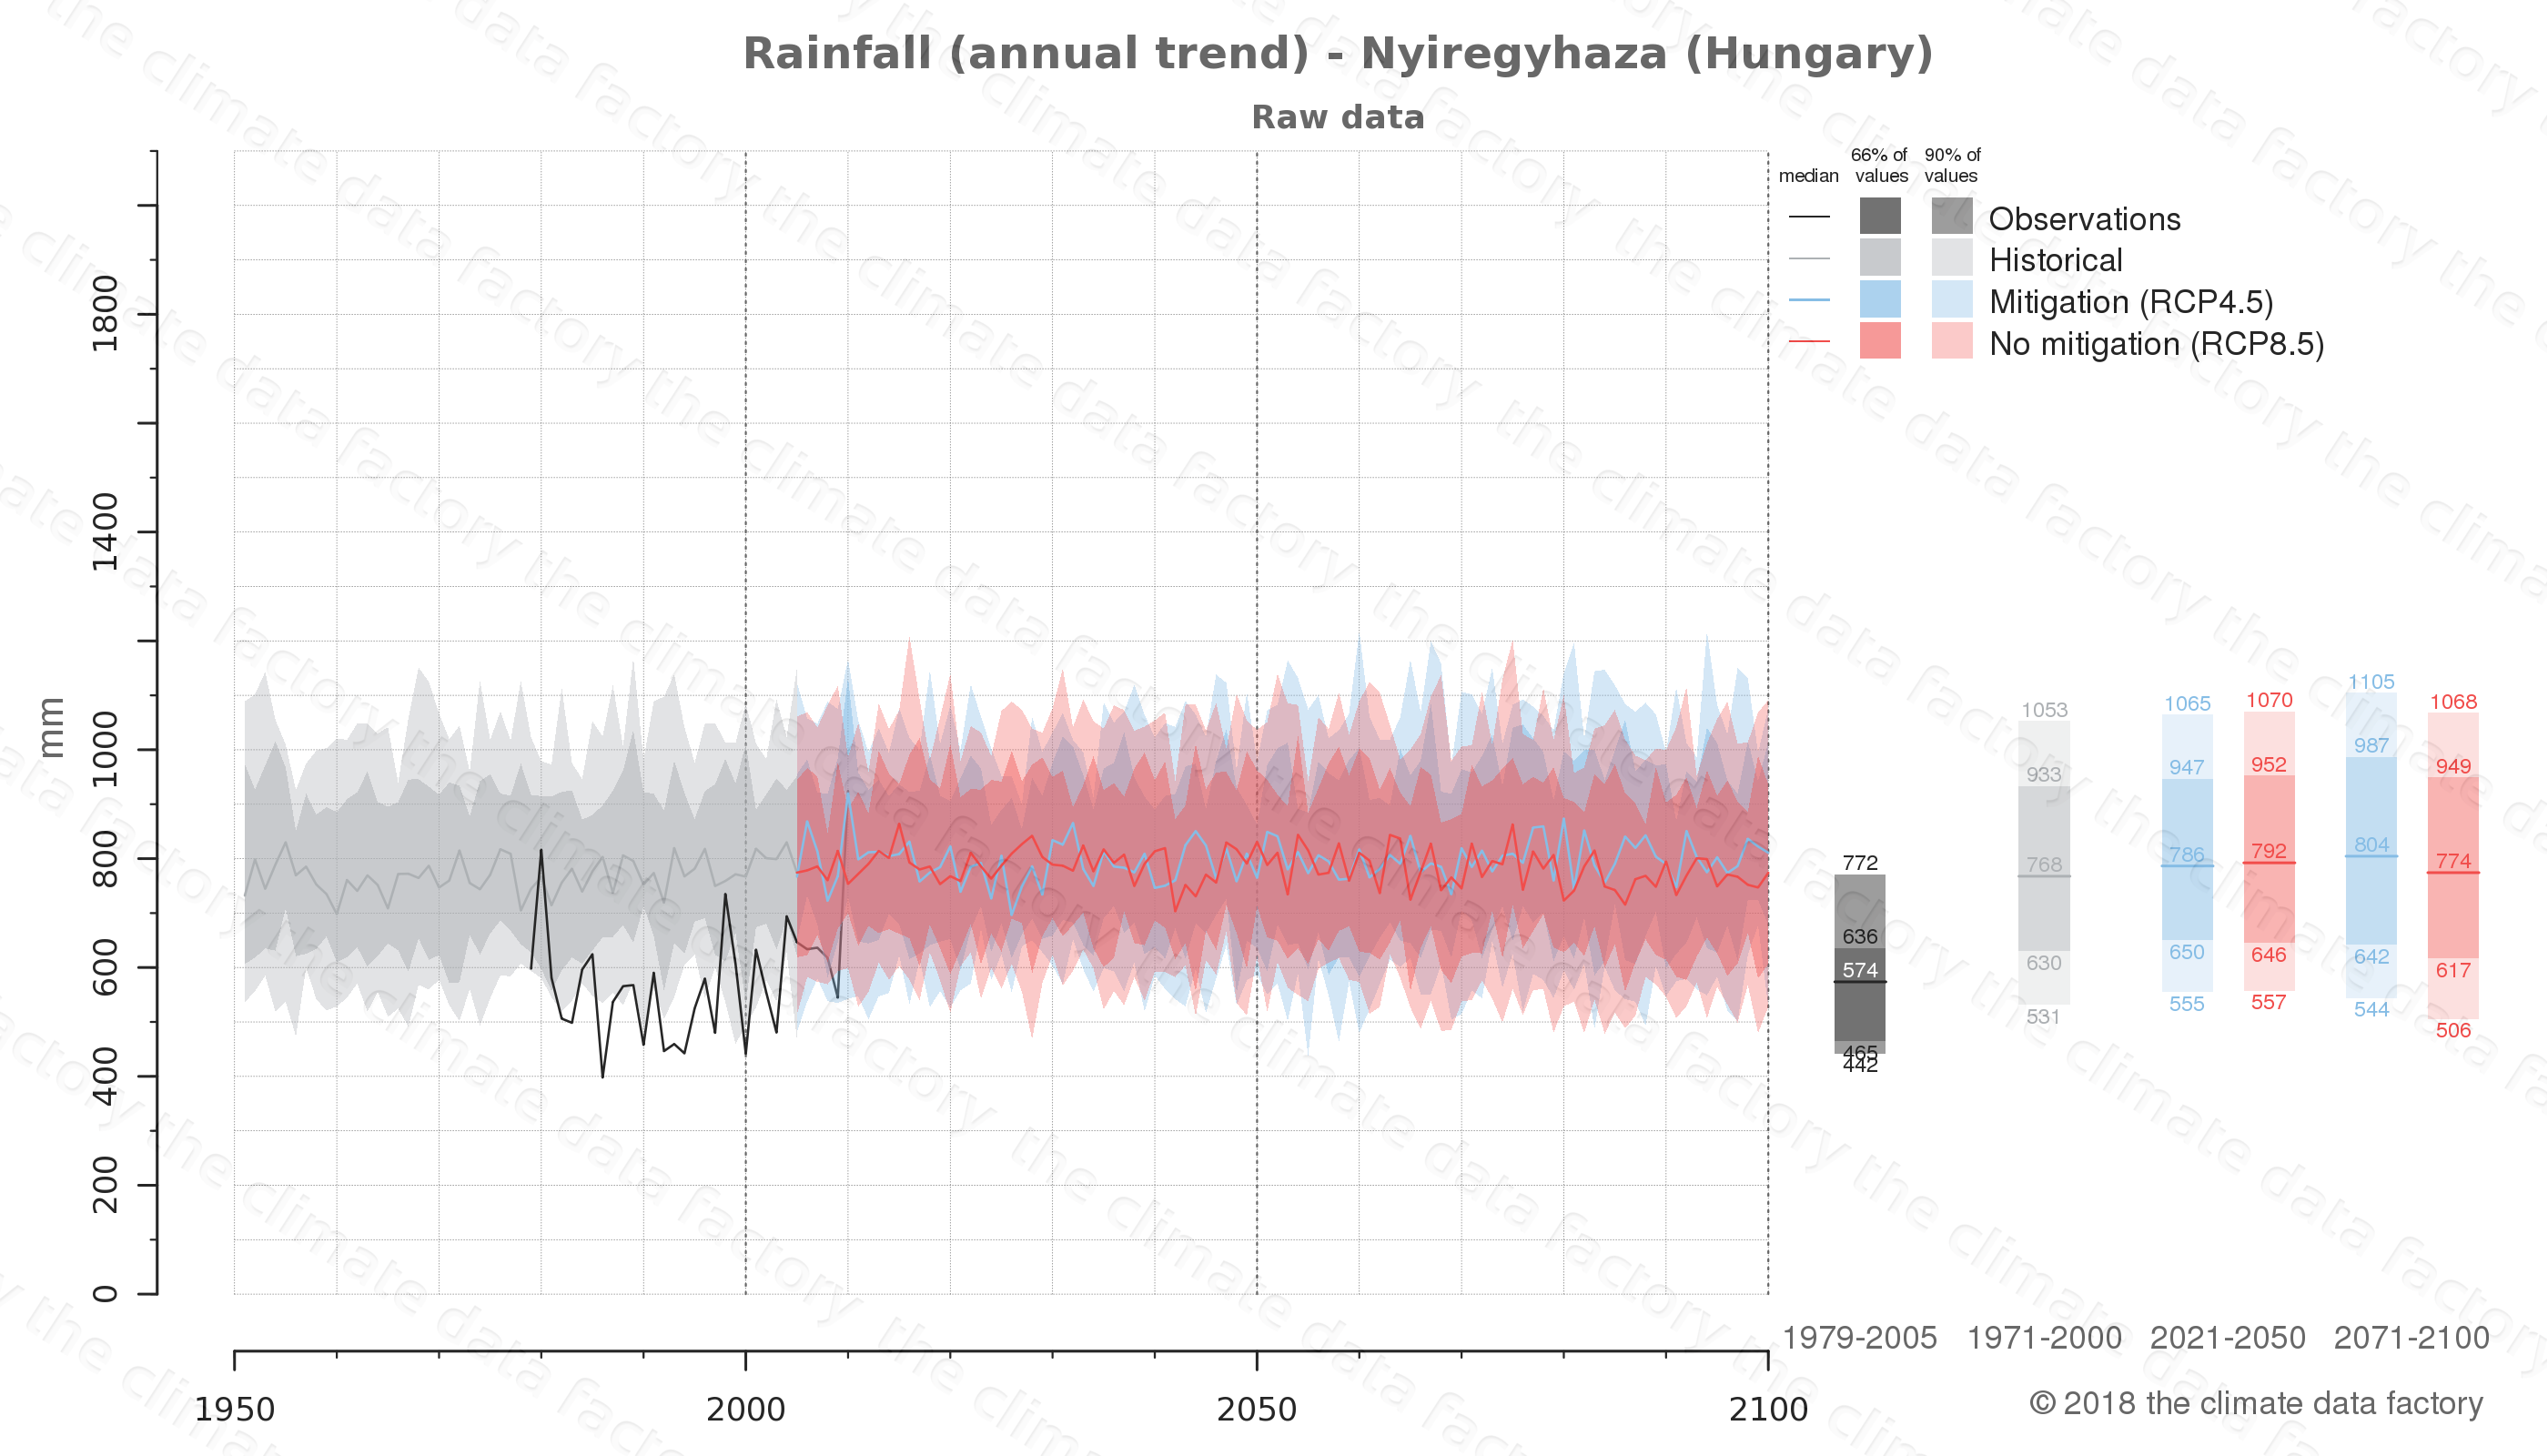 climate change data policy adaptation climate graph city data rainfall nyiregyhaza hungary